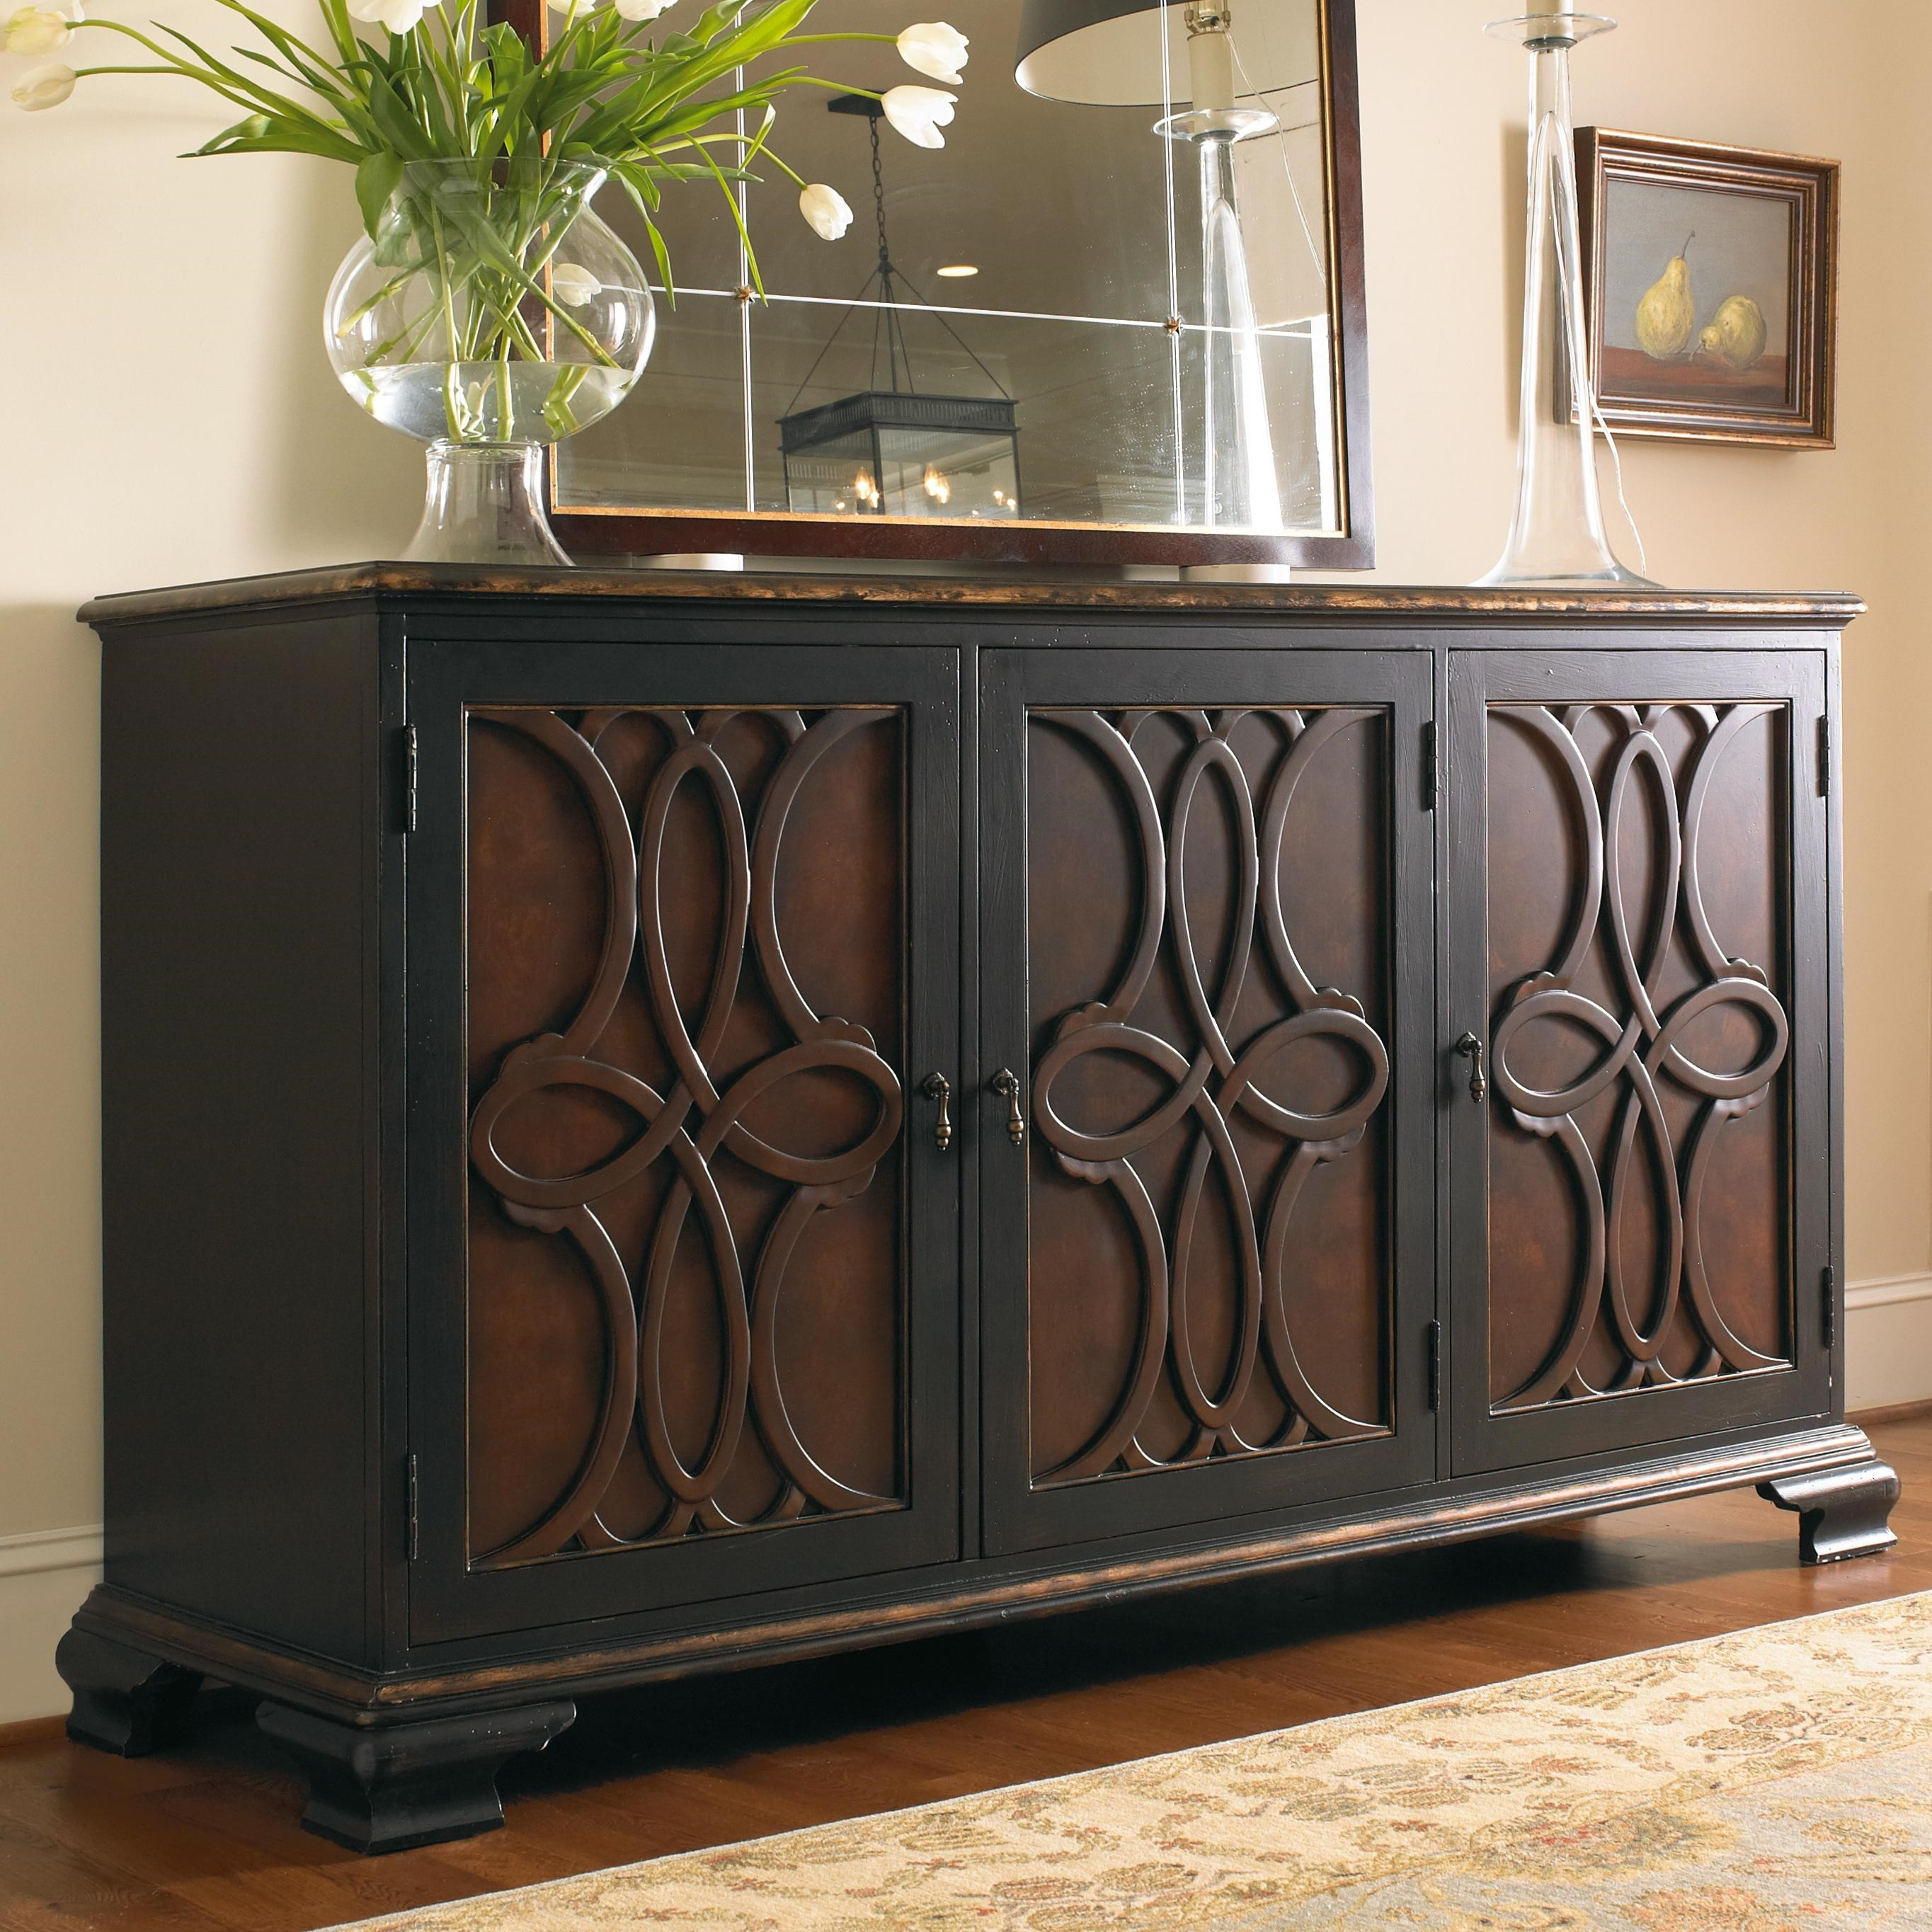 Gentil Living Room Accents Two Tone Credenza With Raised Applique Door Fronts By  Hamilton Home At Rotmans